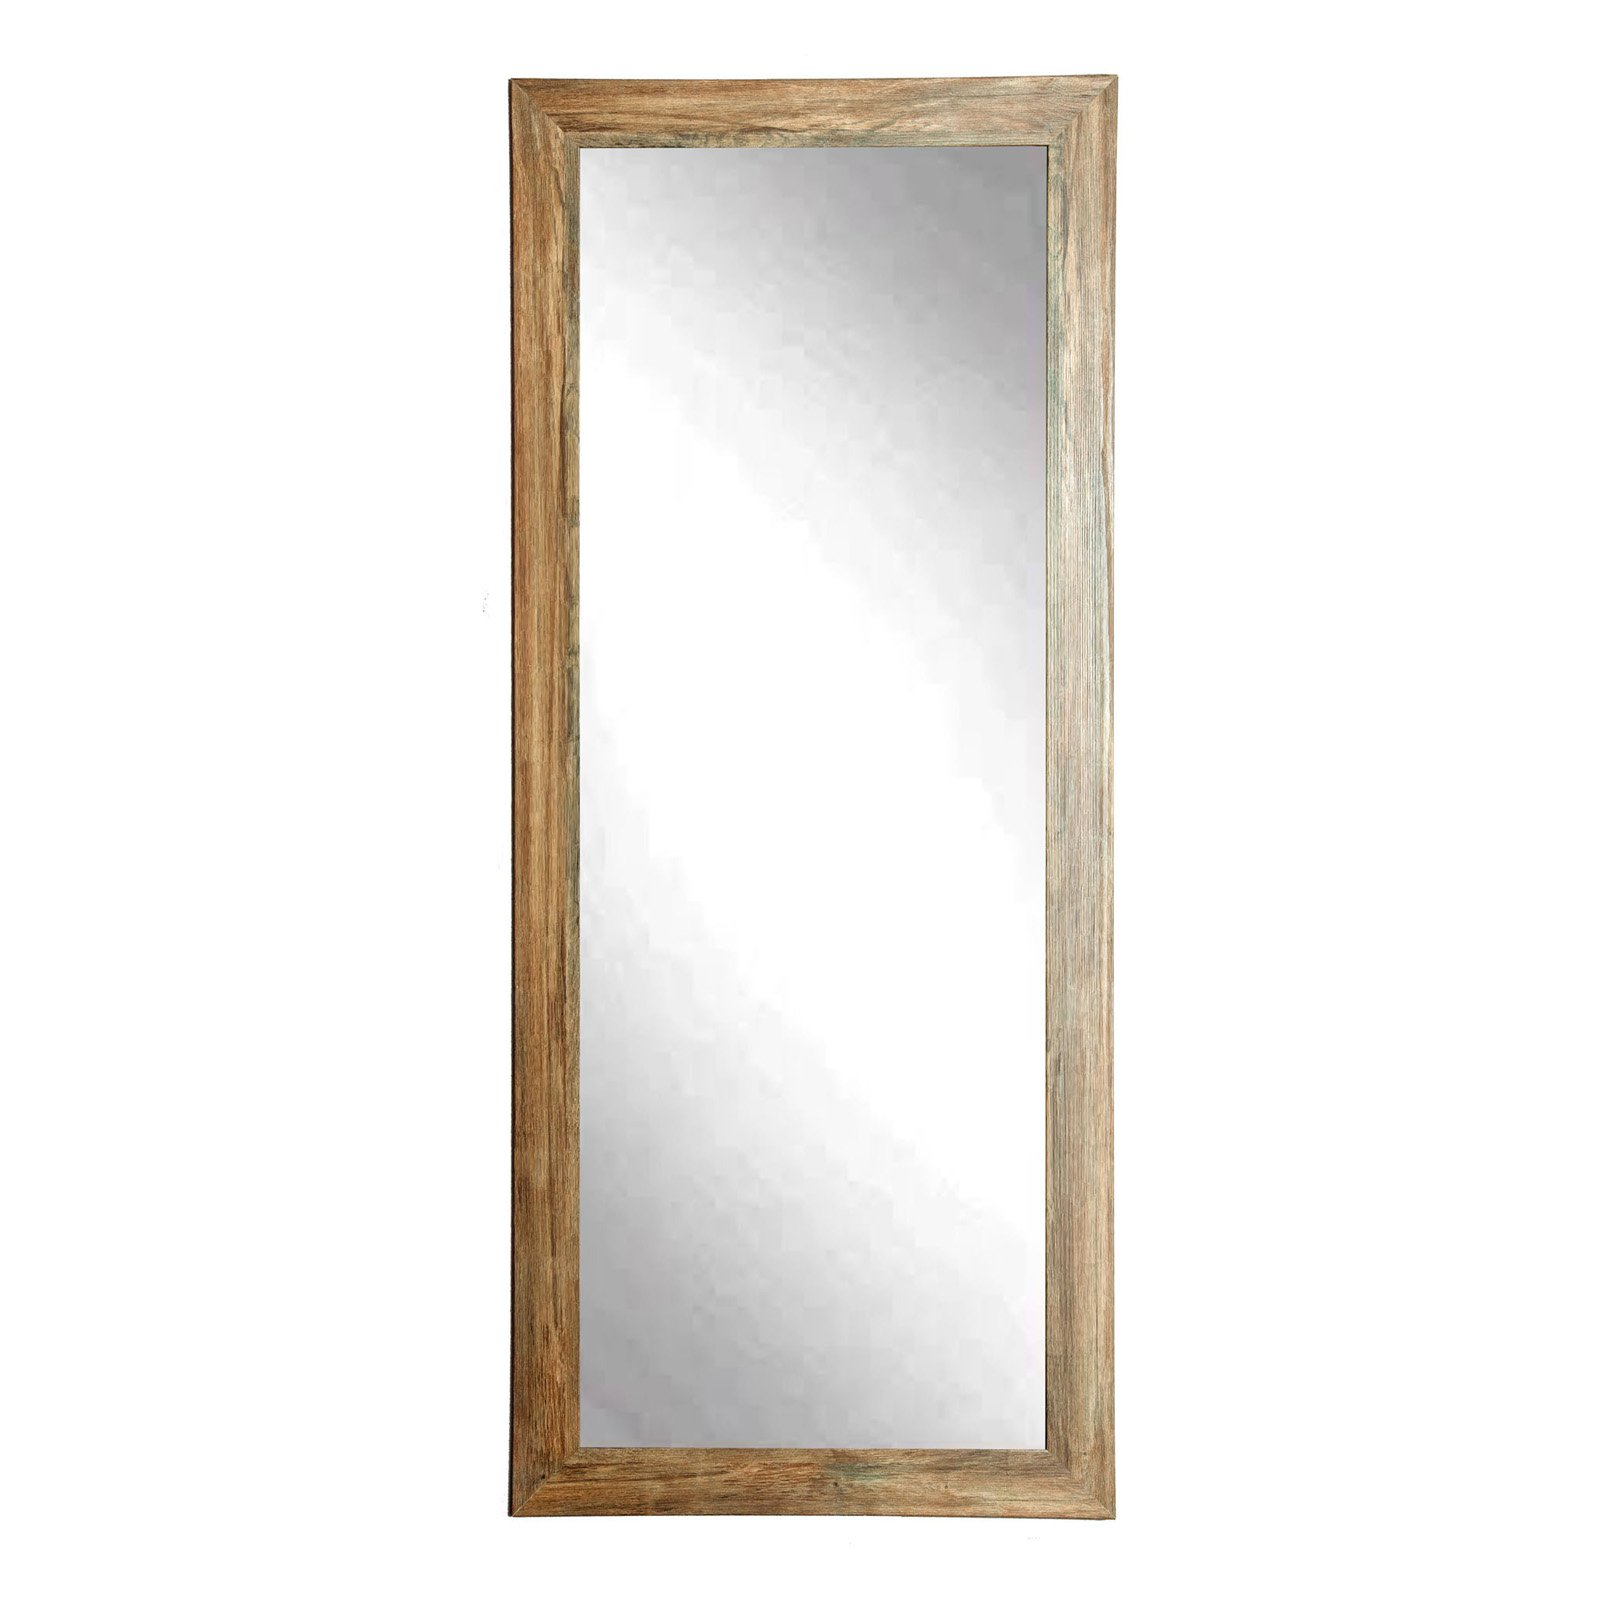 BrandtWorks Blonde Barnwood Leaning Floor Mirror by American Made